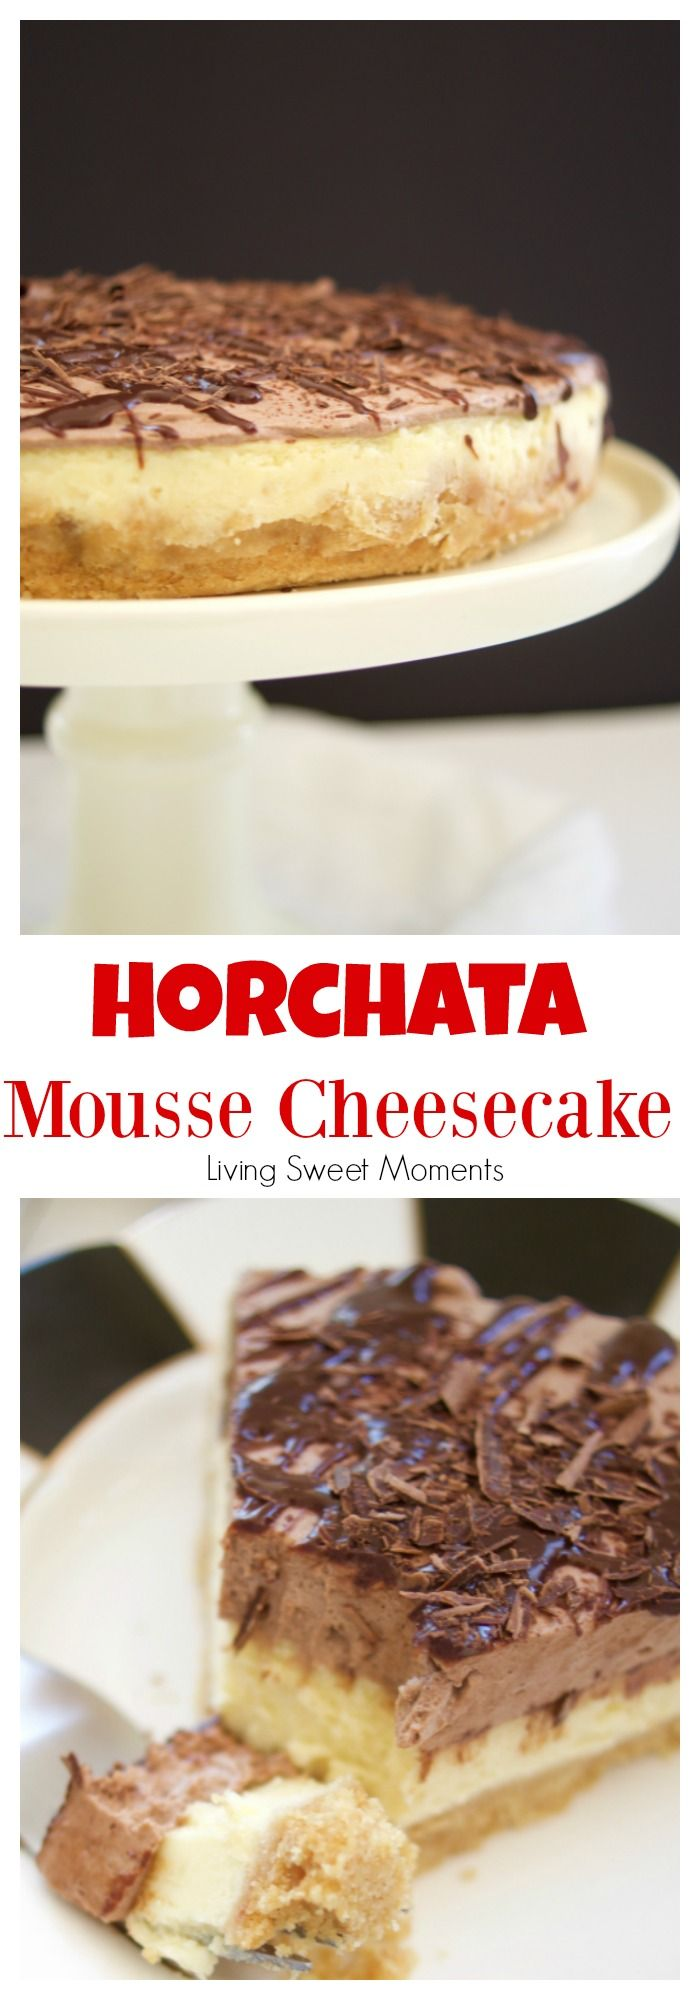 This Horchata Mousse Cheesecake recipe is easy to make, creamy and delicious. It has a Cookie crust, horchata cheesecake, horchata-choco mousse, & ganache. #ad